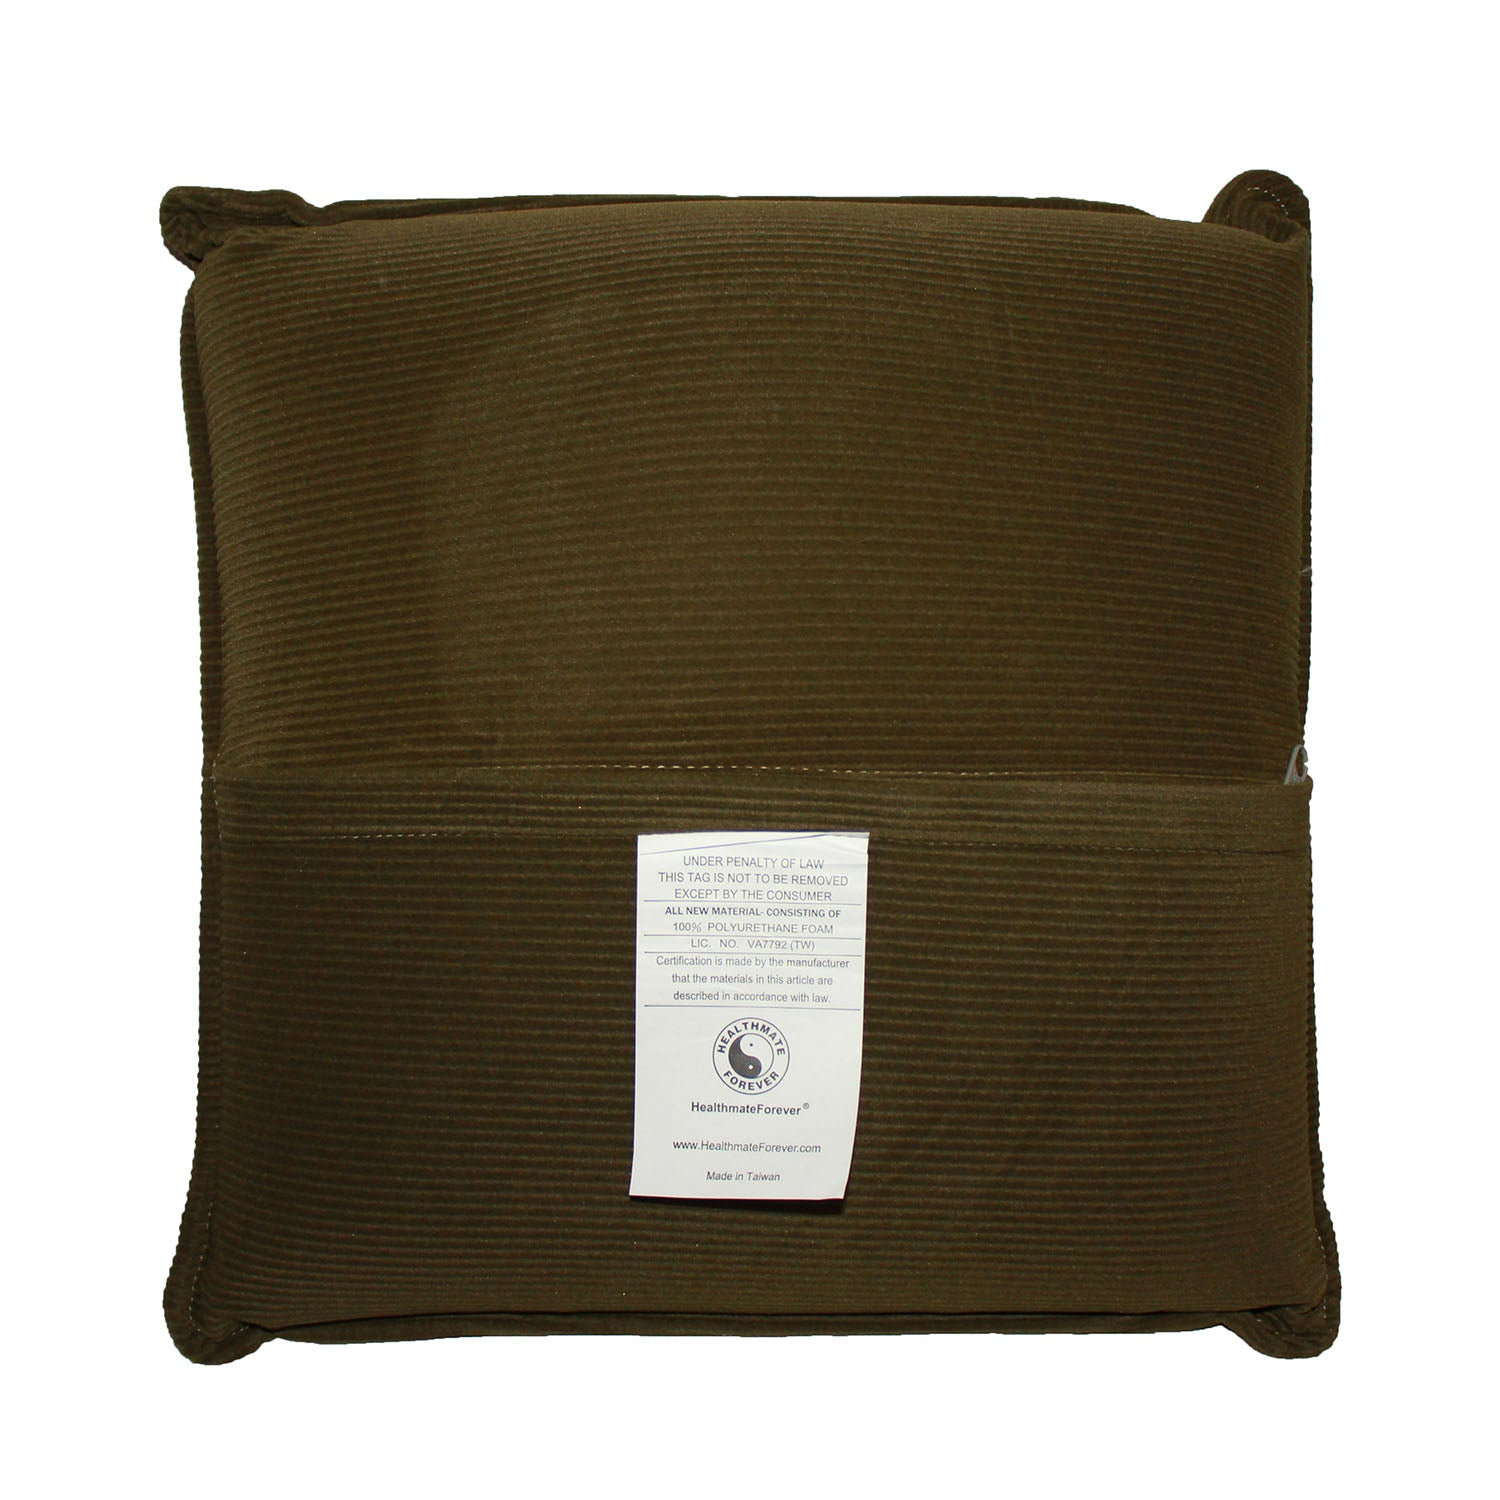 Pressure Activated Massage Pillow Olive Green - HealthmateForever